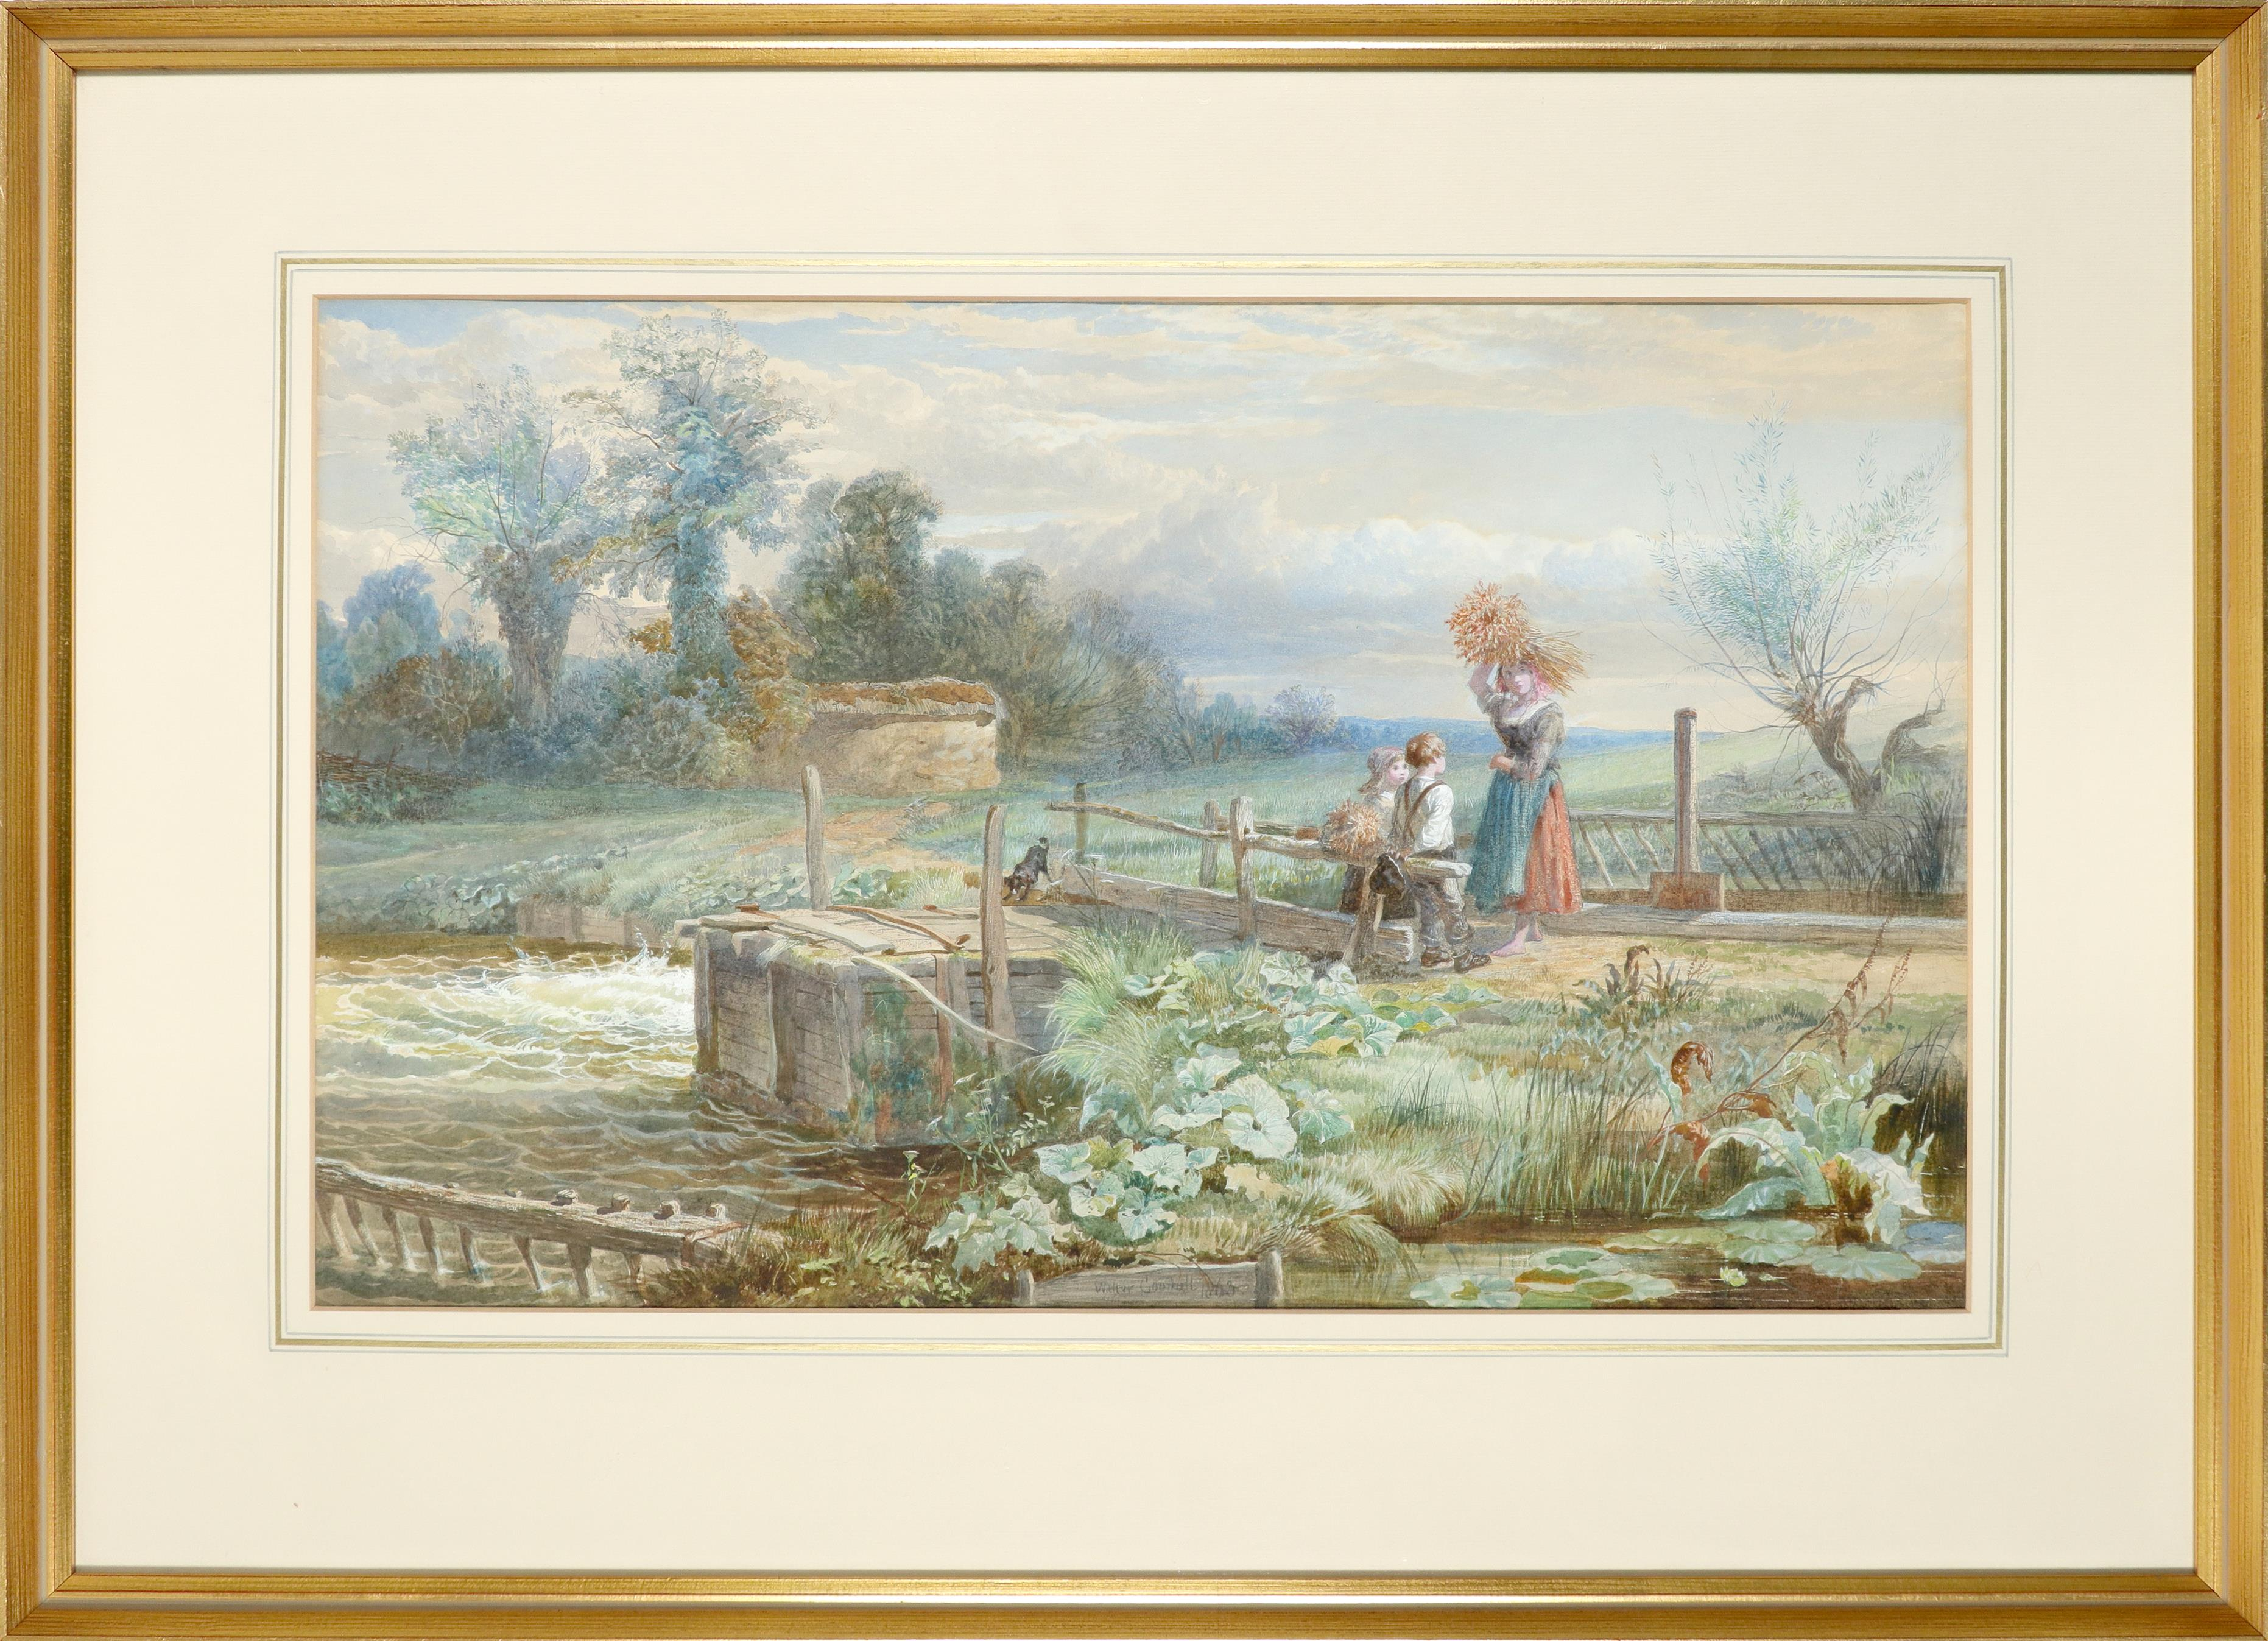 Walter Goodall (1830-1889) The little gleaners Signed and dated Walter Goodall 1863 (lower centre) - Image 2 of 3